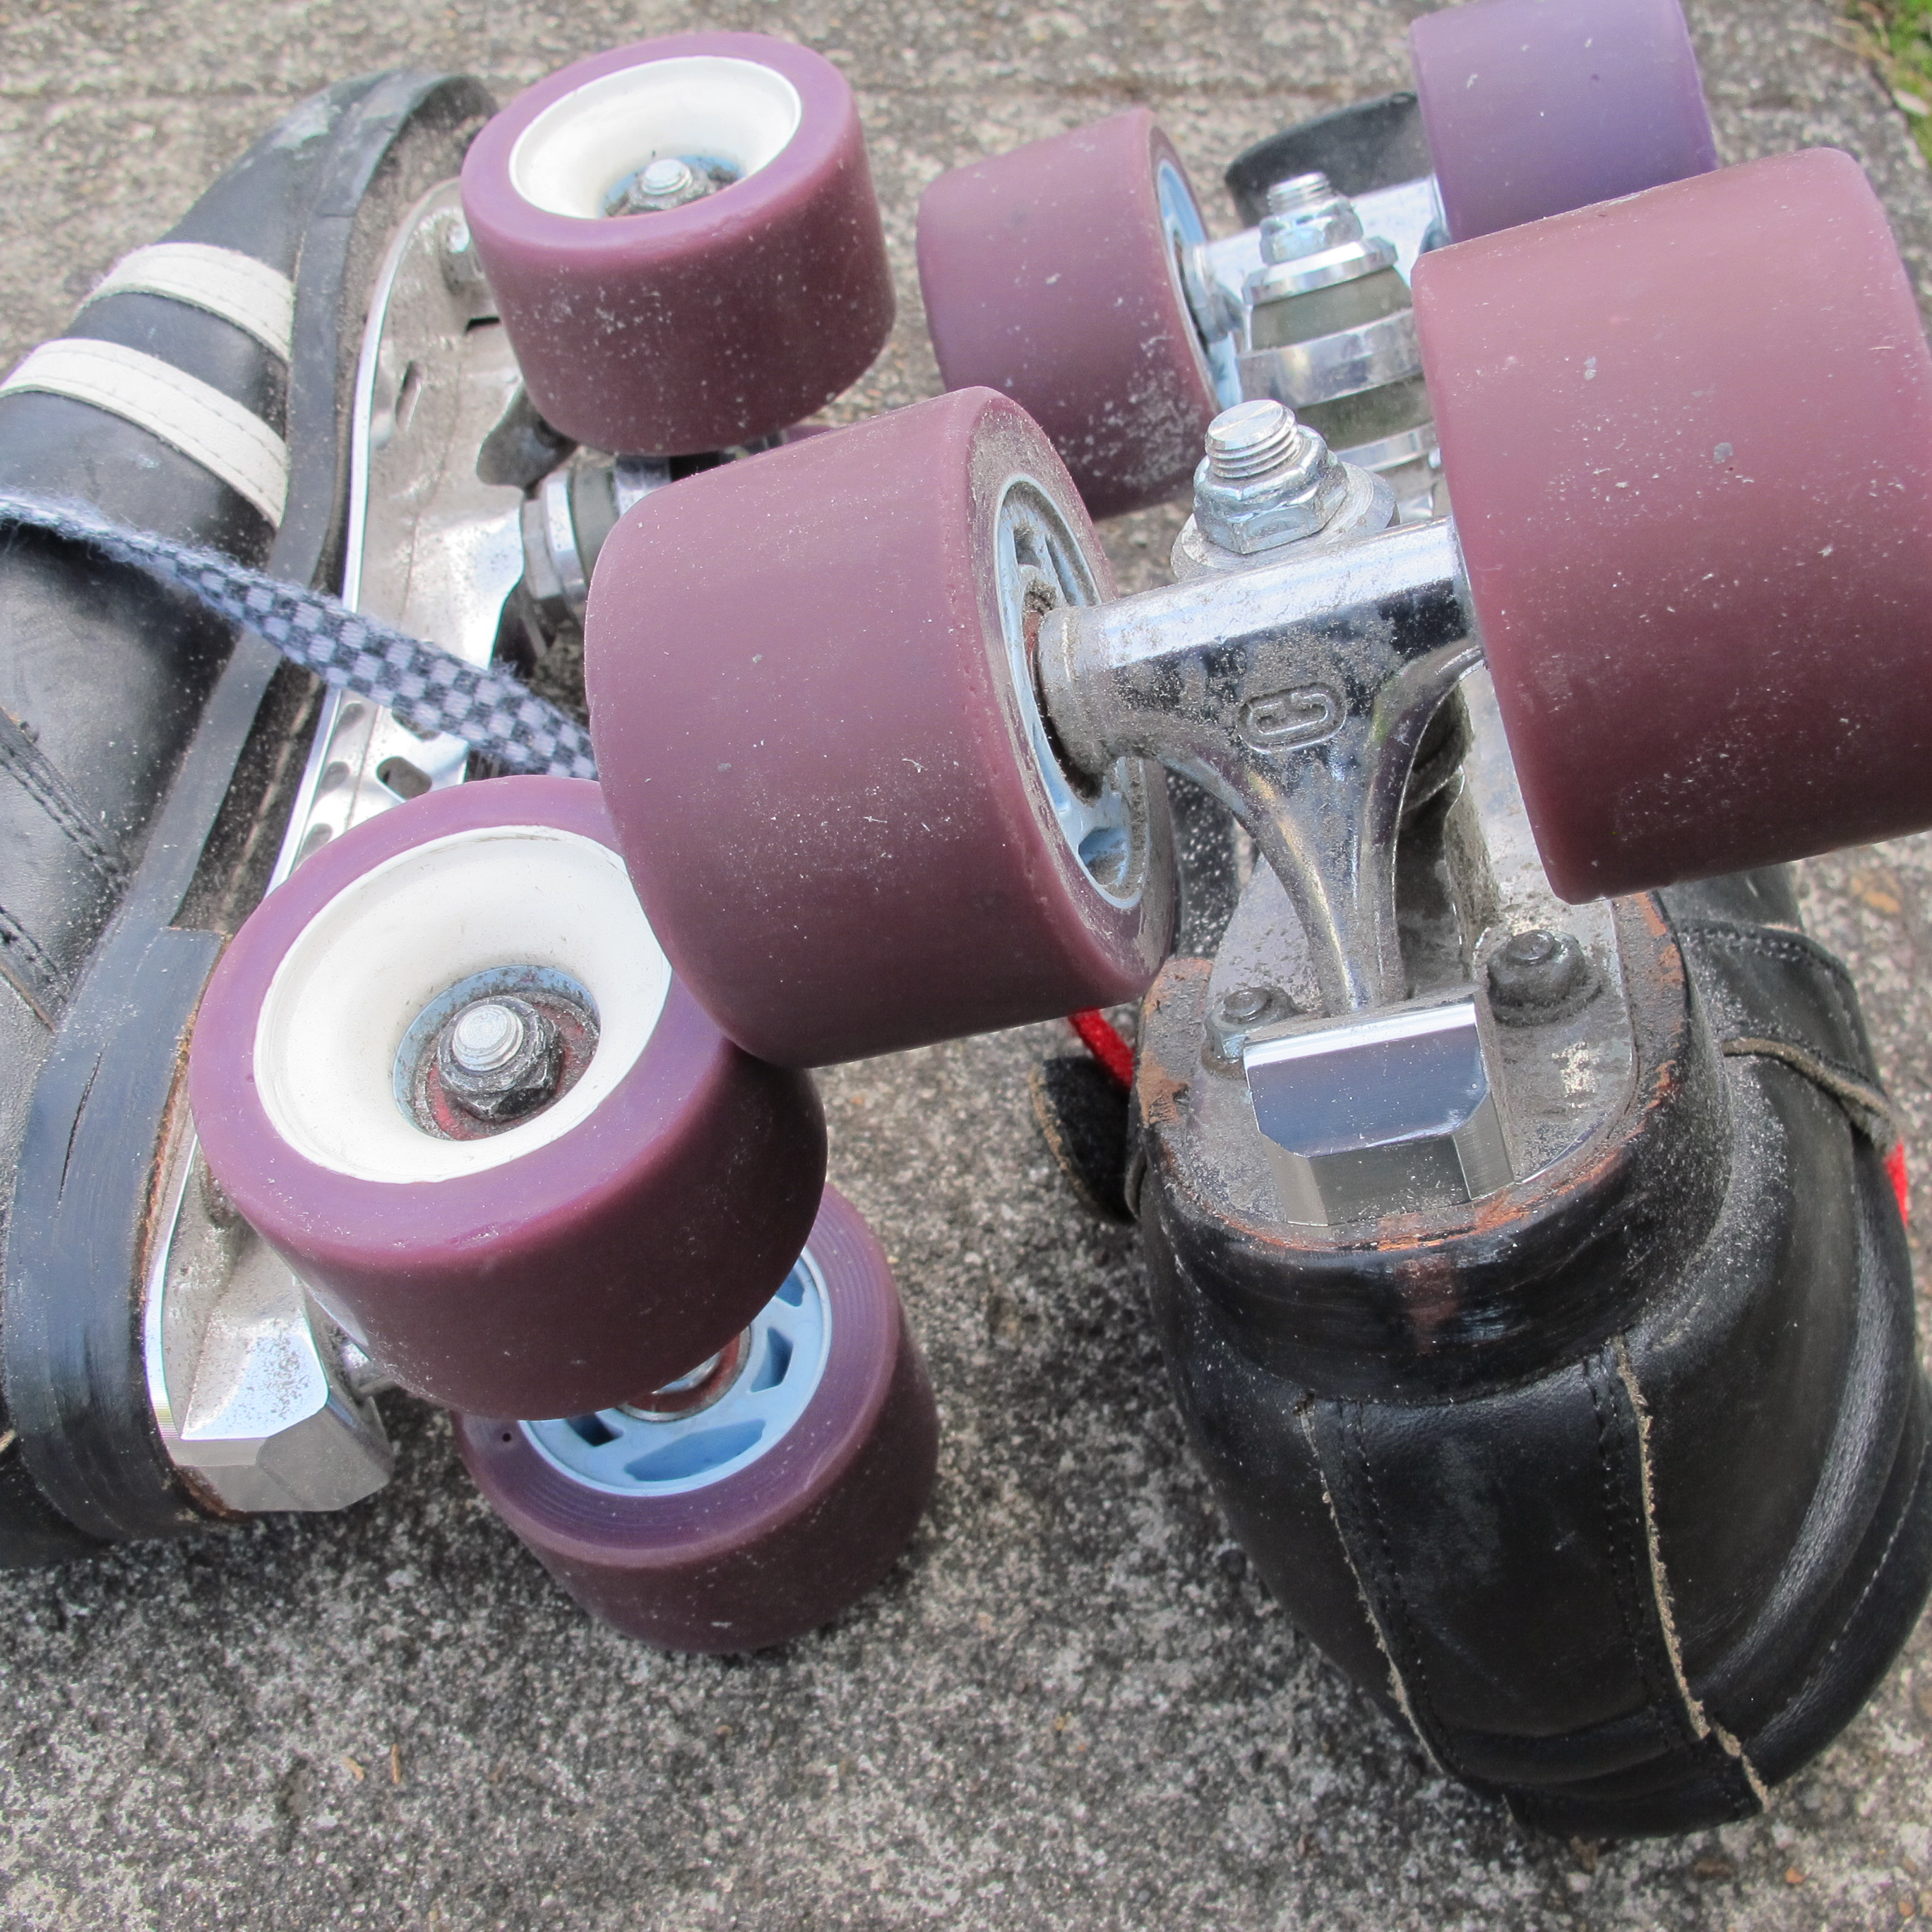 These skates have seen better days/need some love and attention.